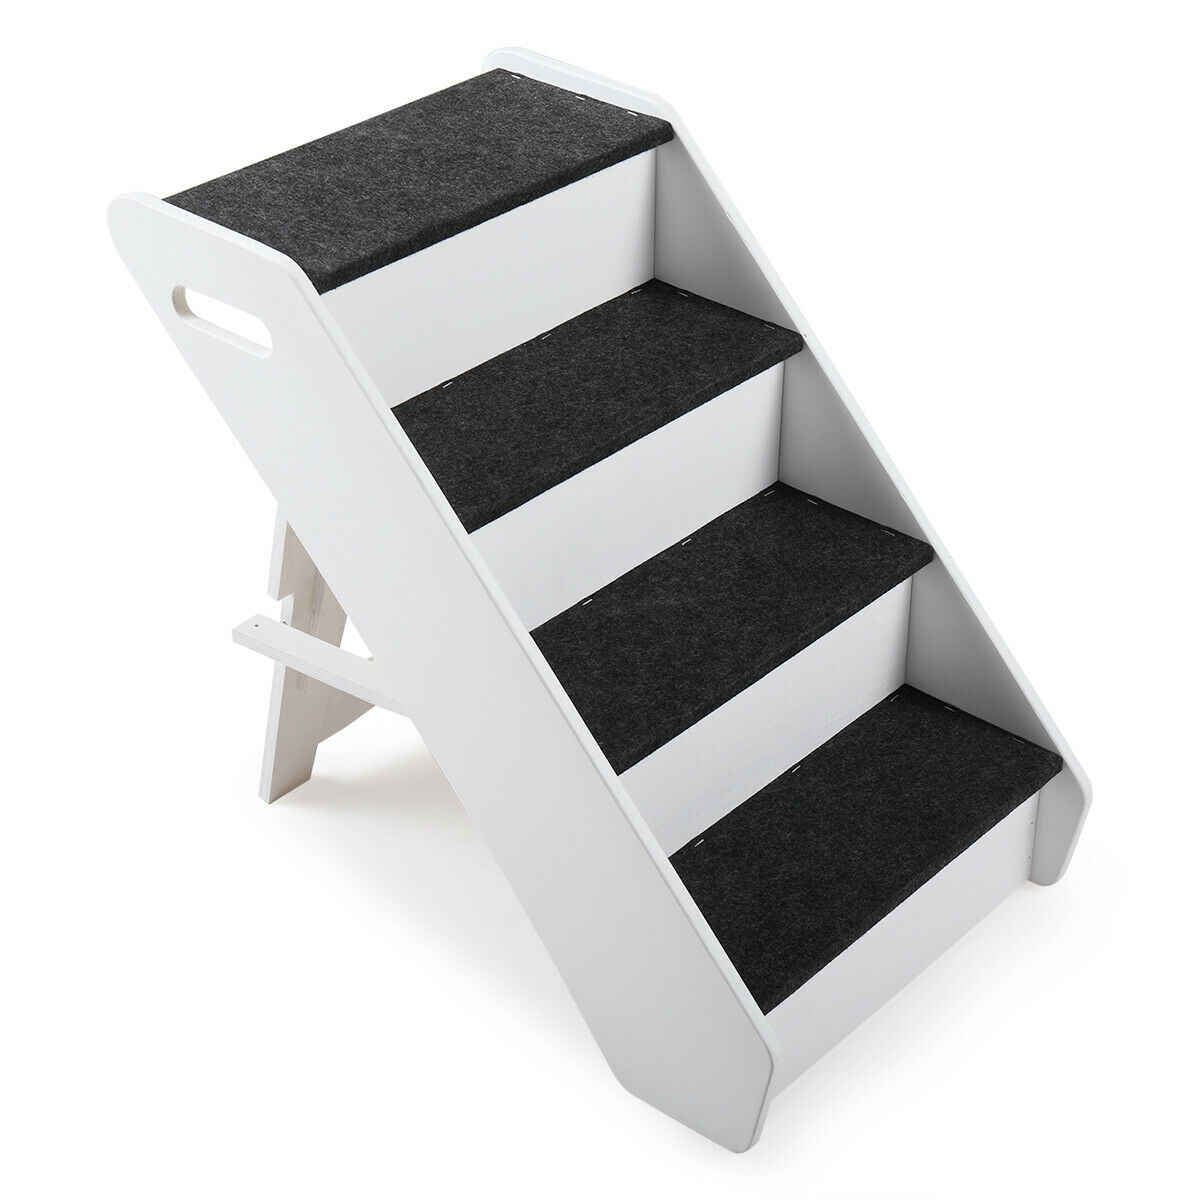 Portable Dog Steps 4 Steps for High Bed Pet Stairs Small Dog